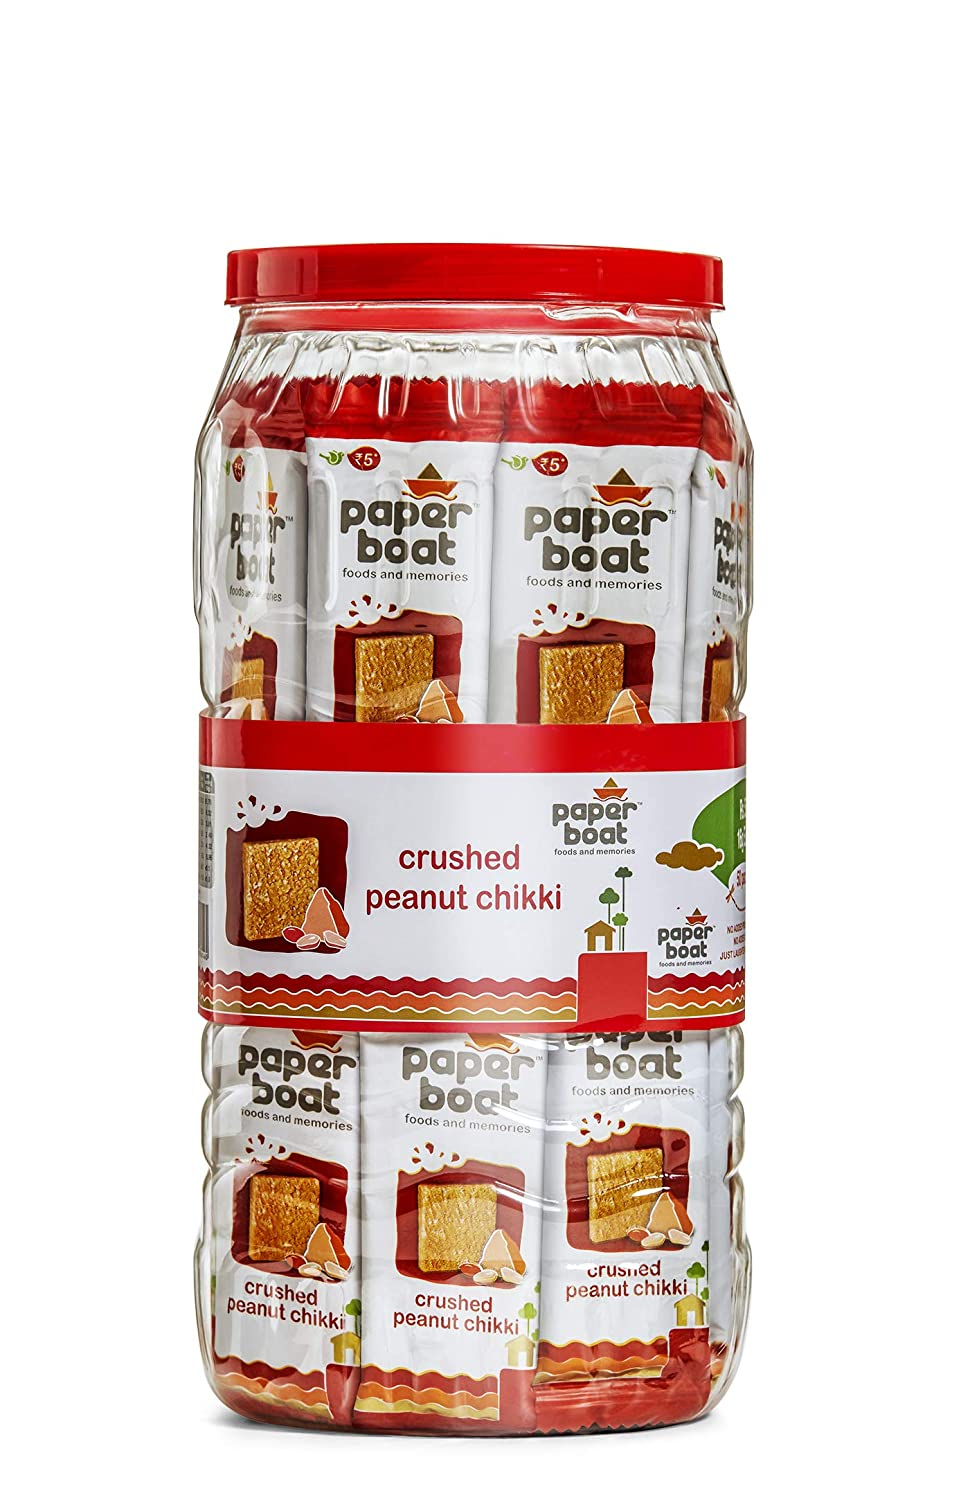 Paper Boat Crushed Peanut Chikki Jar, No Added Preservatives and Colours (50 pieces, 16g each)